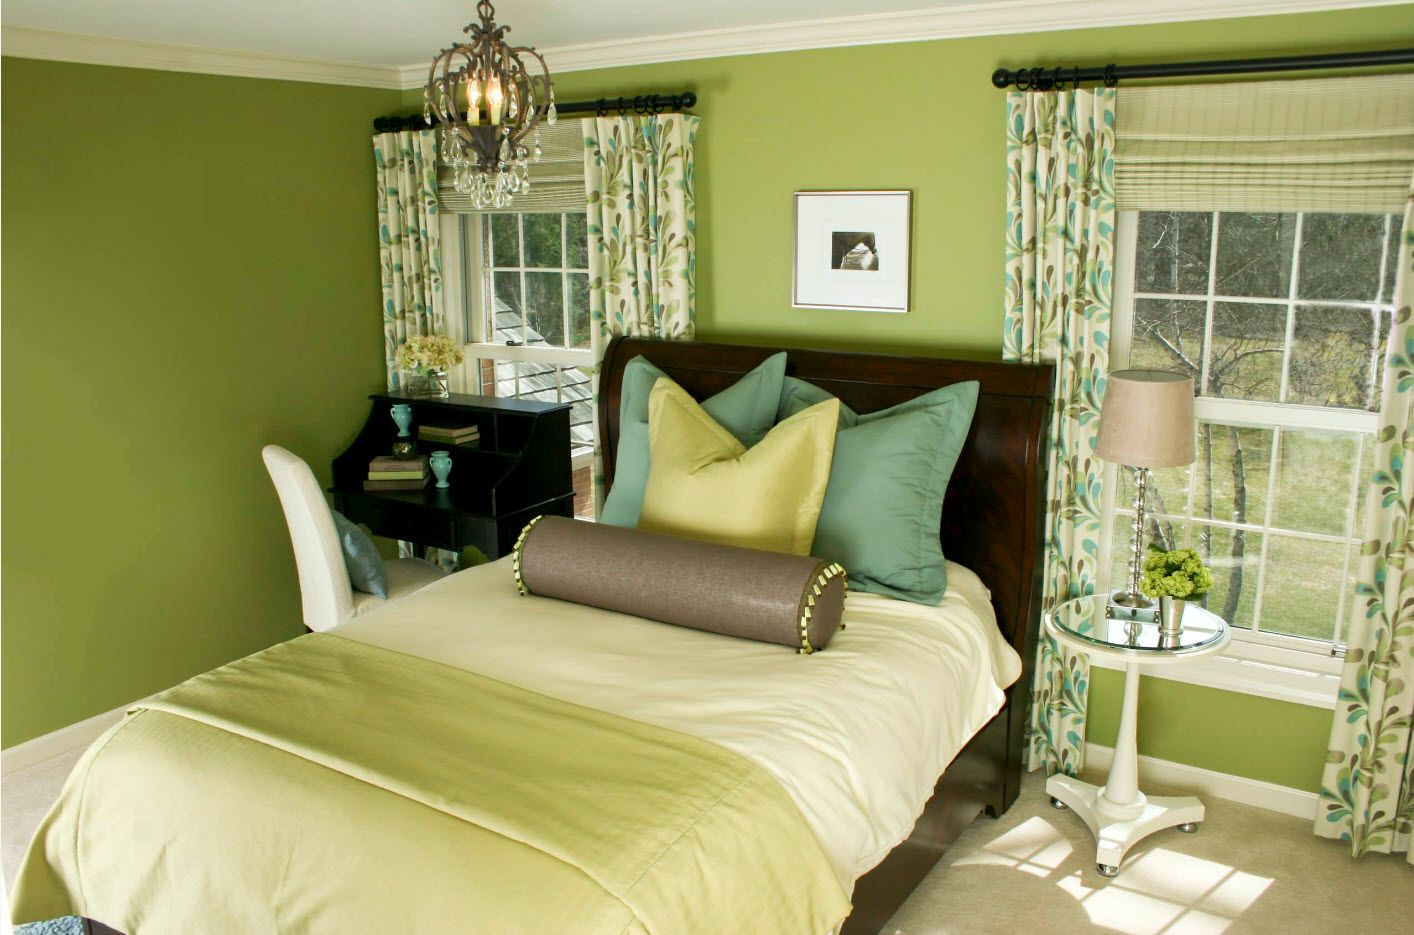 Olive color set for modern bedroom 2017 with colorful draperies